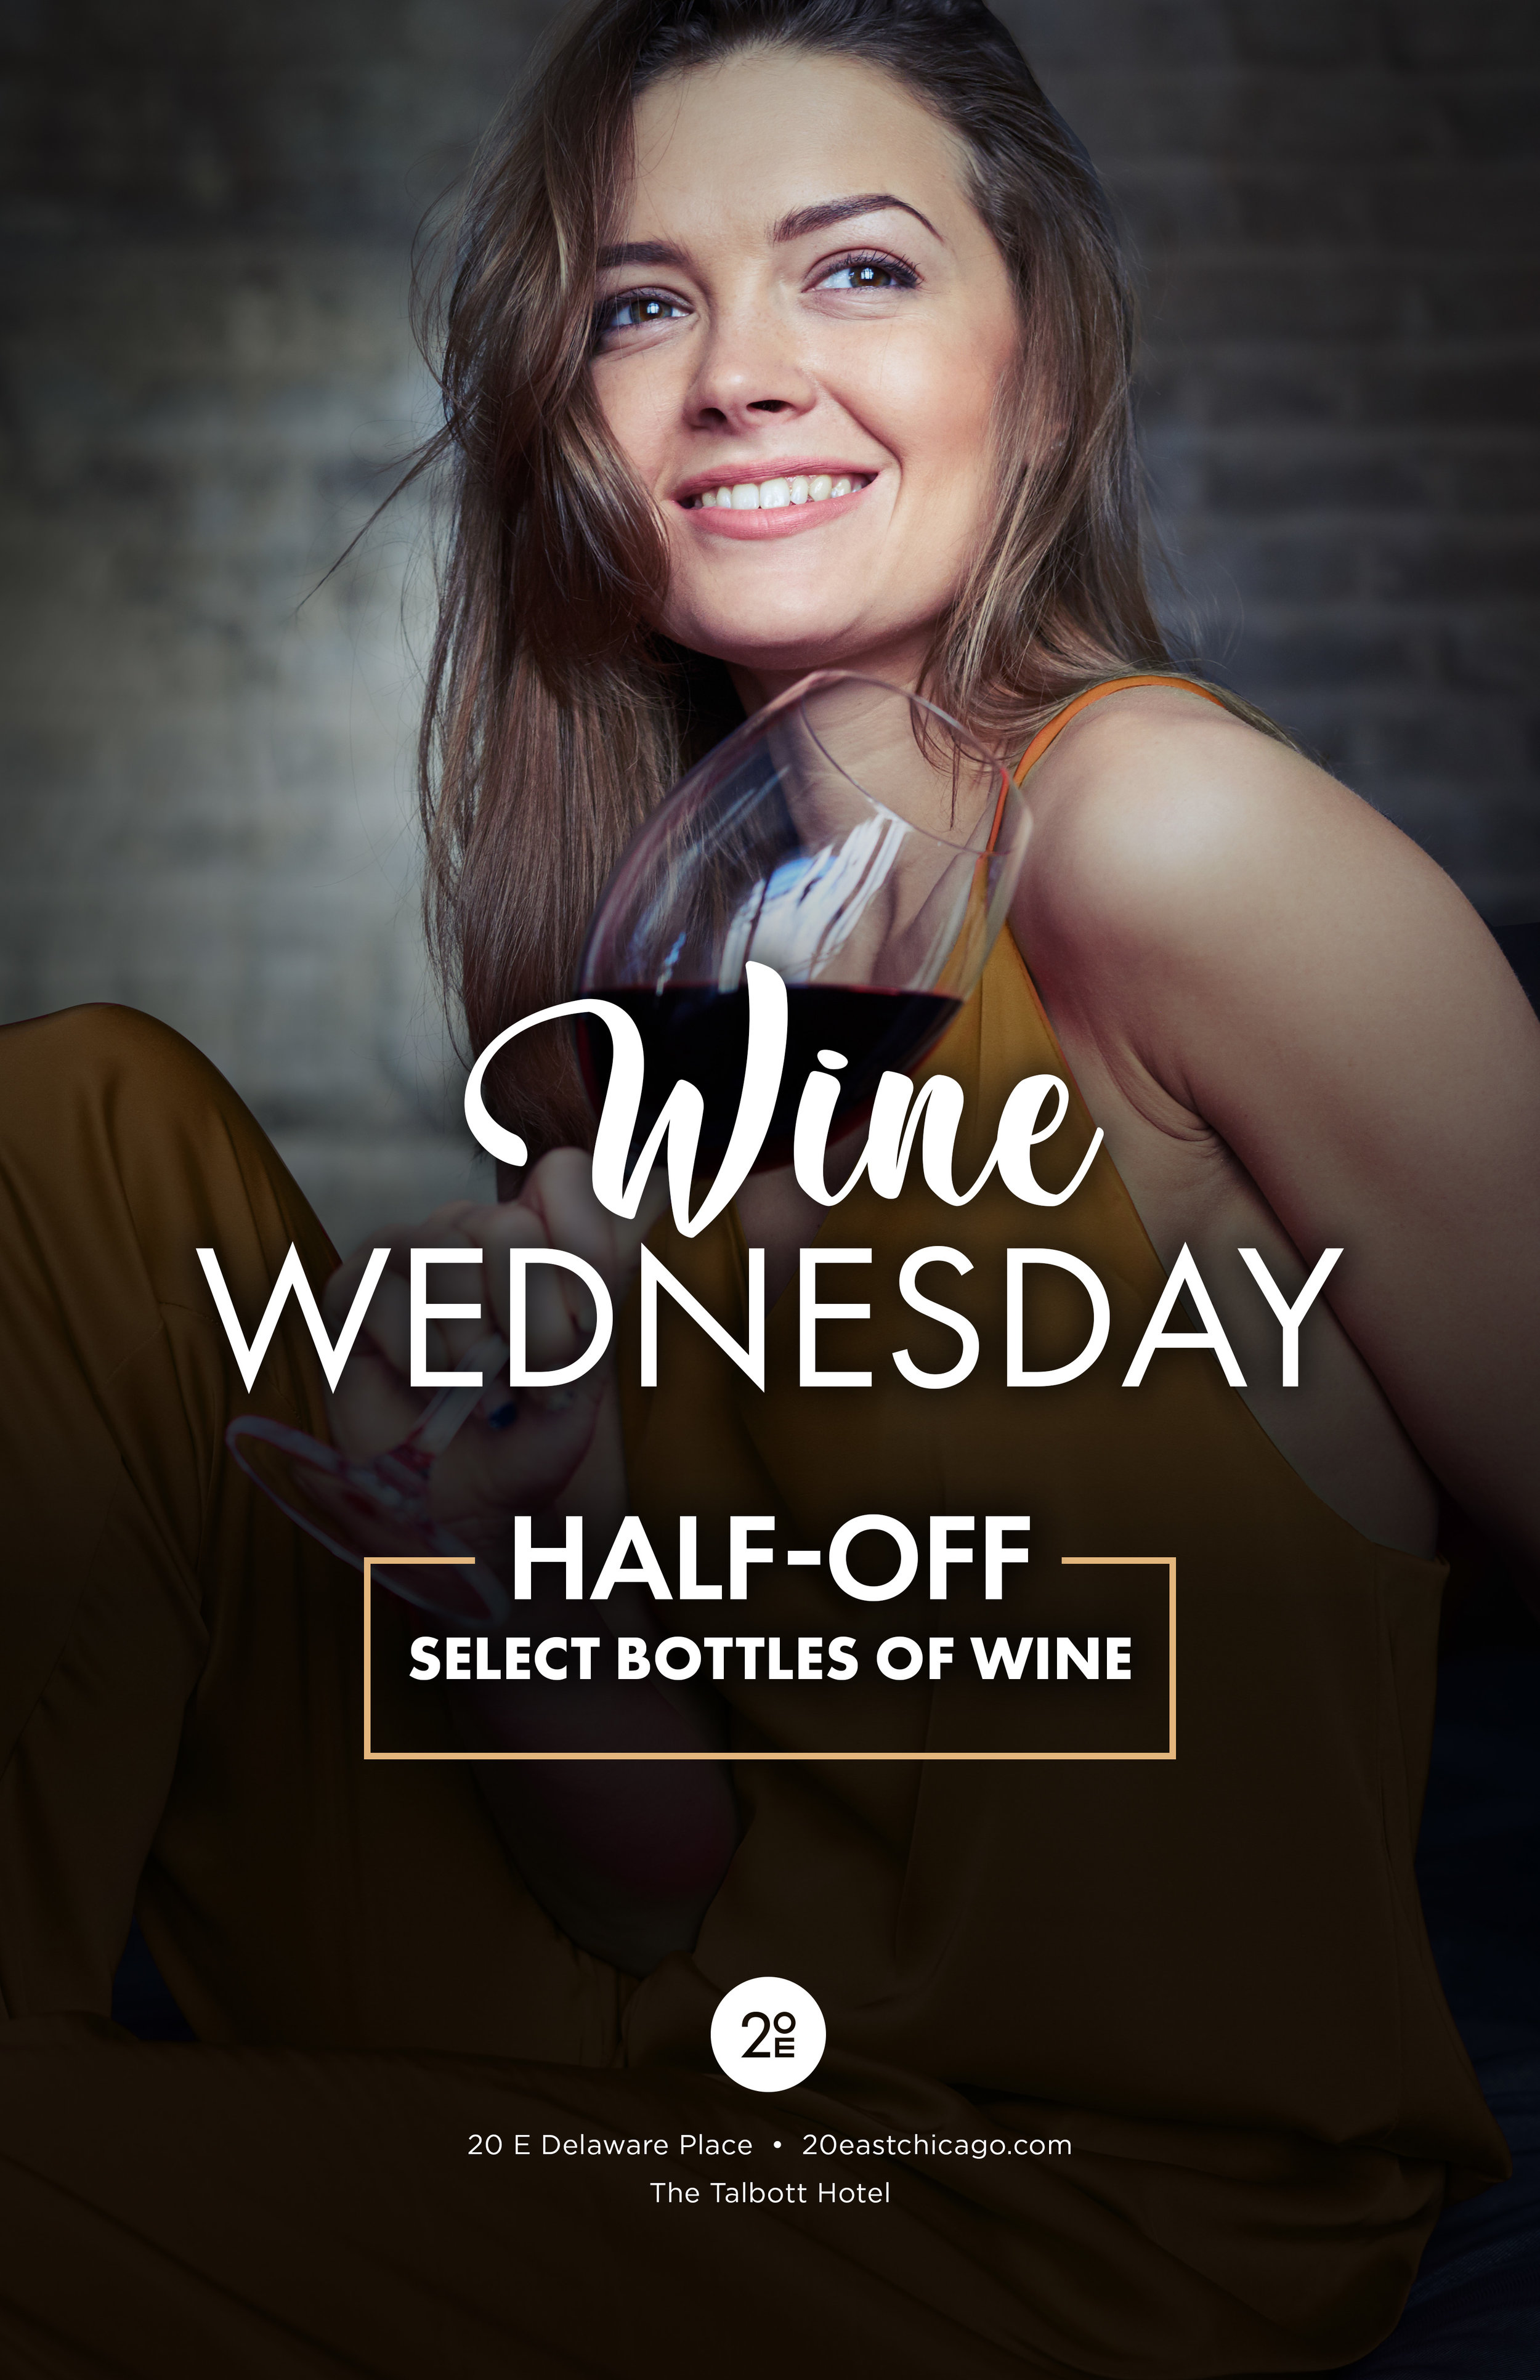 Join us for Wine Wednesday each week and enjoy half-off select bottles of wine -